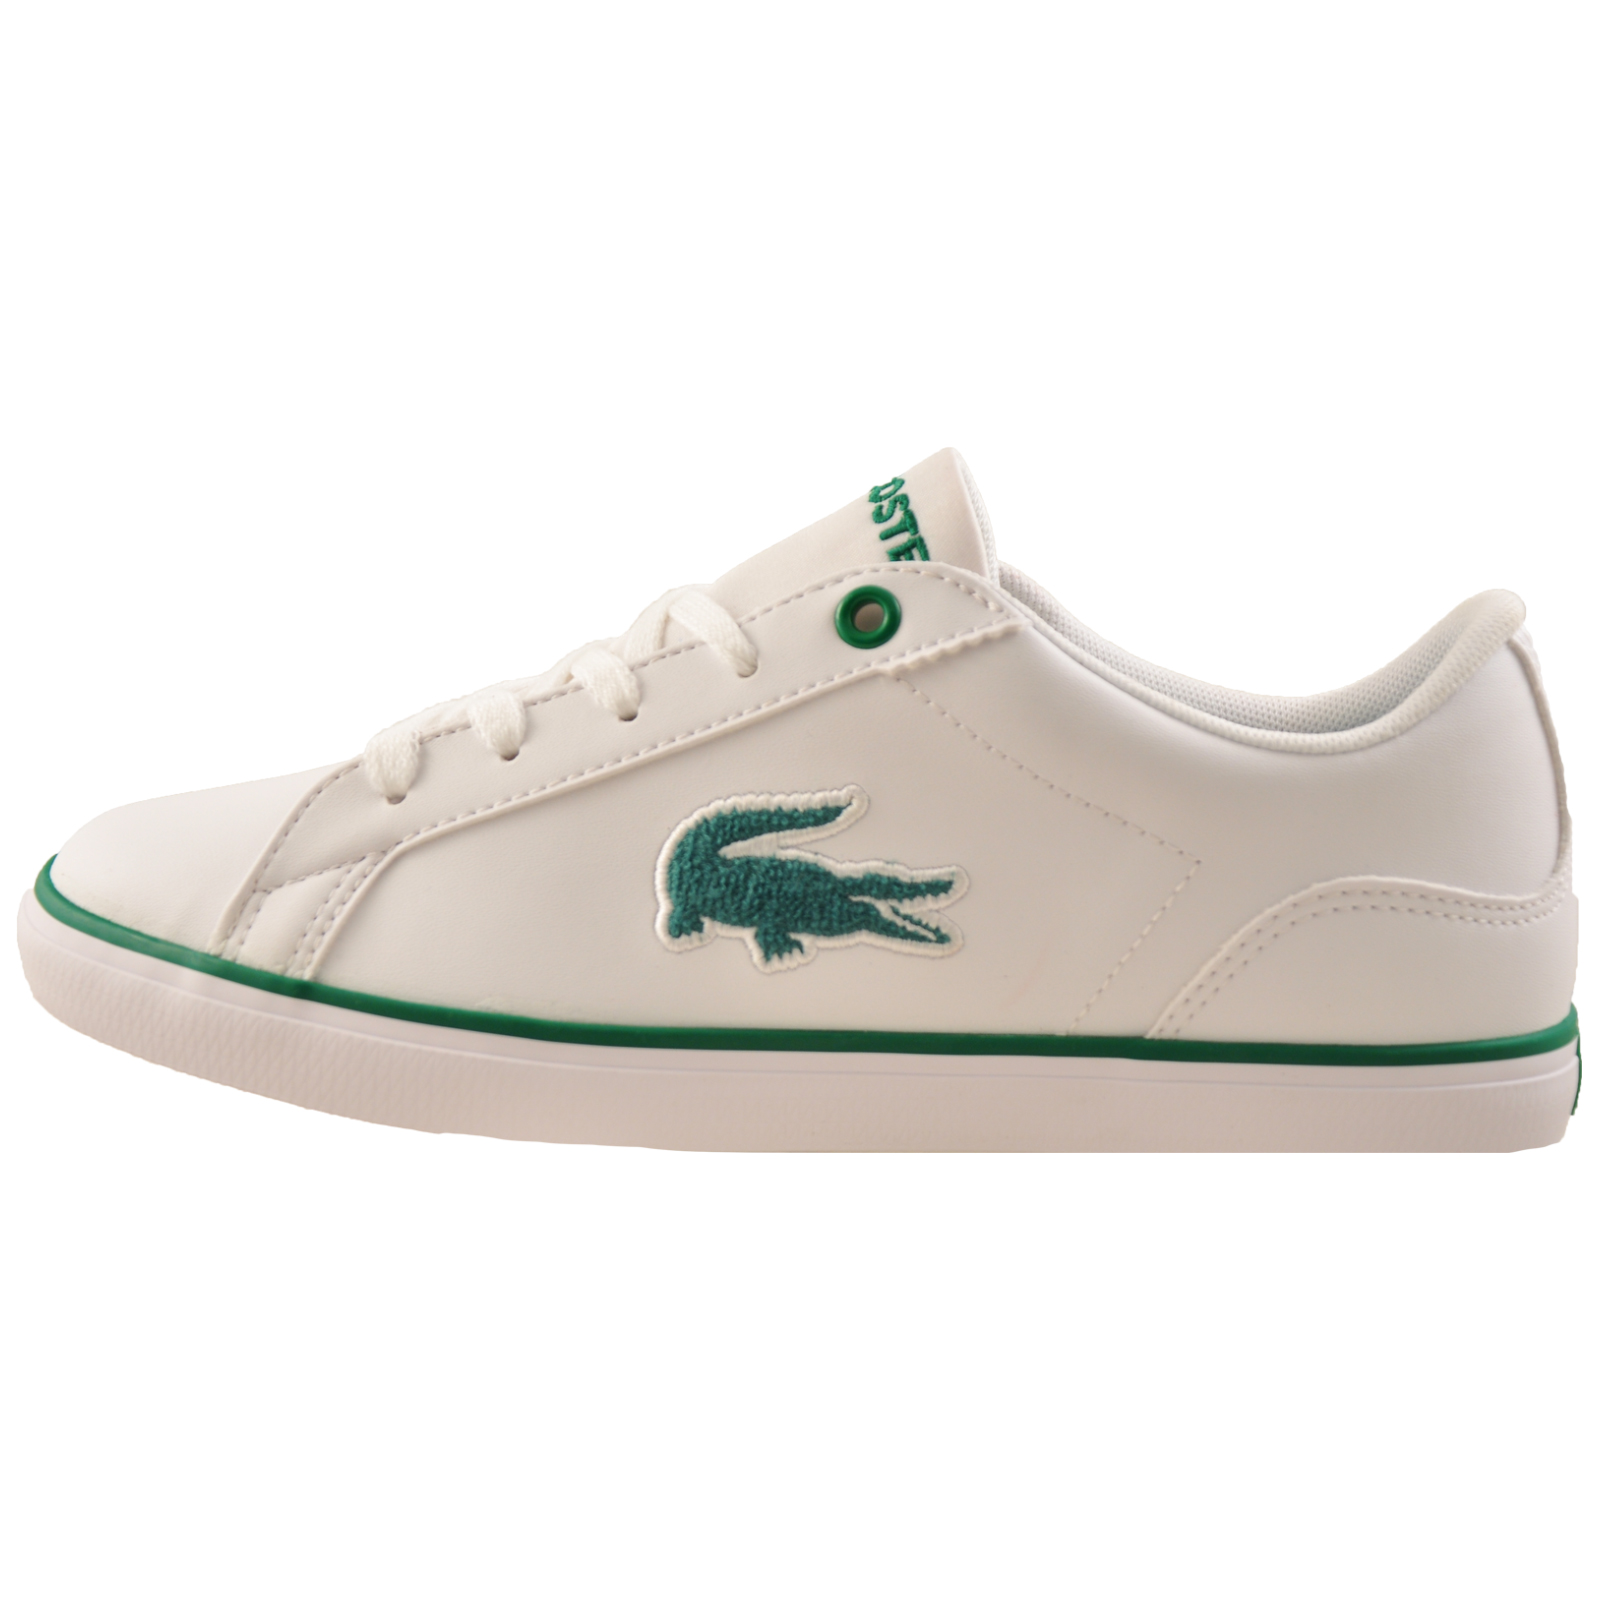 Lacoste Boys Carnaby Evo 219 1 SUC Little Kid Casual Shoes Sneakers BHFO 7546